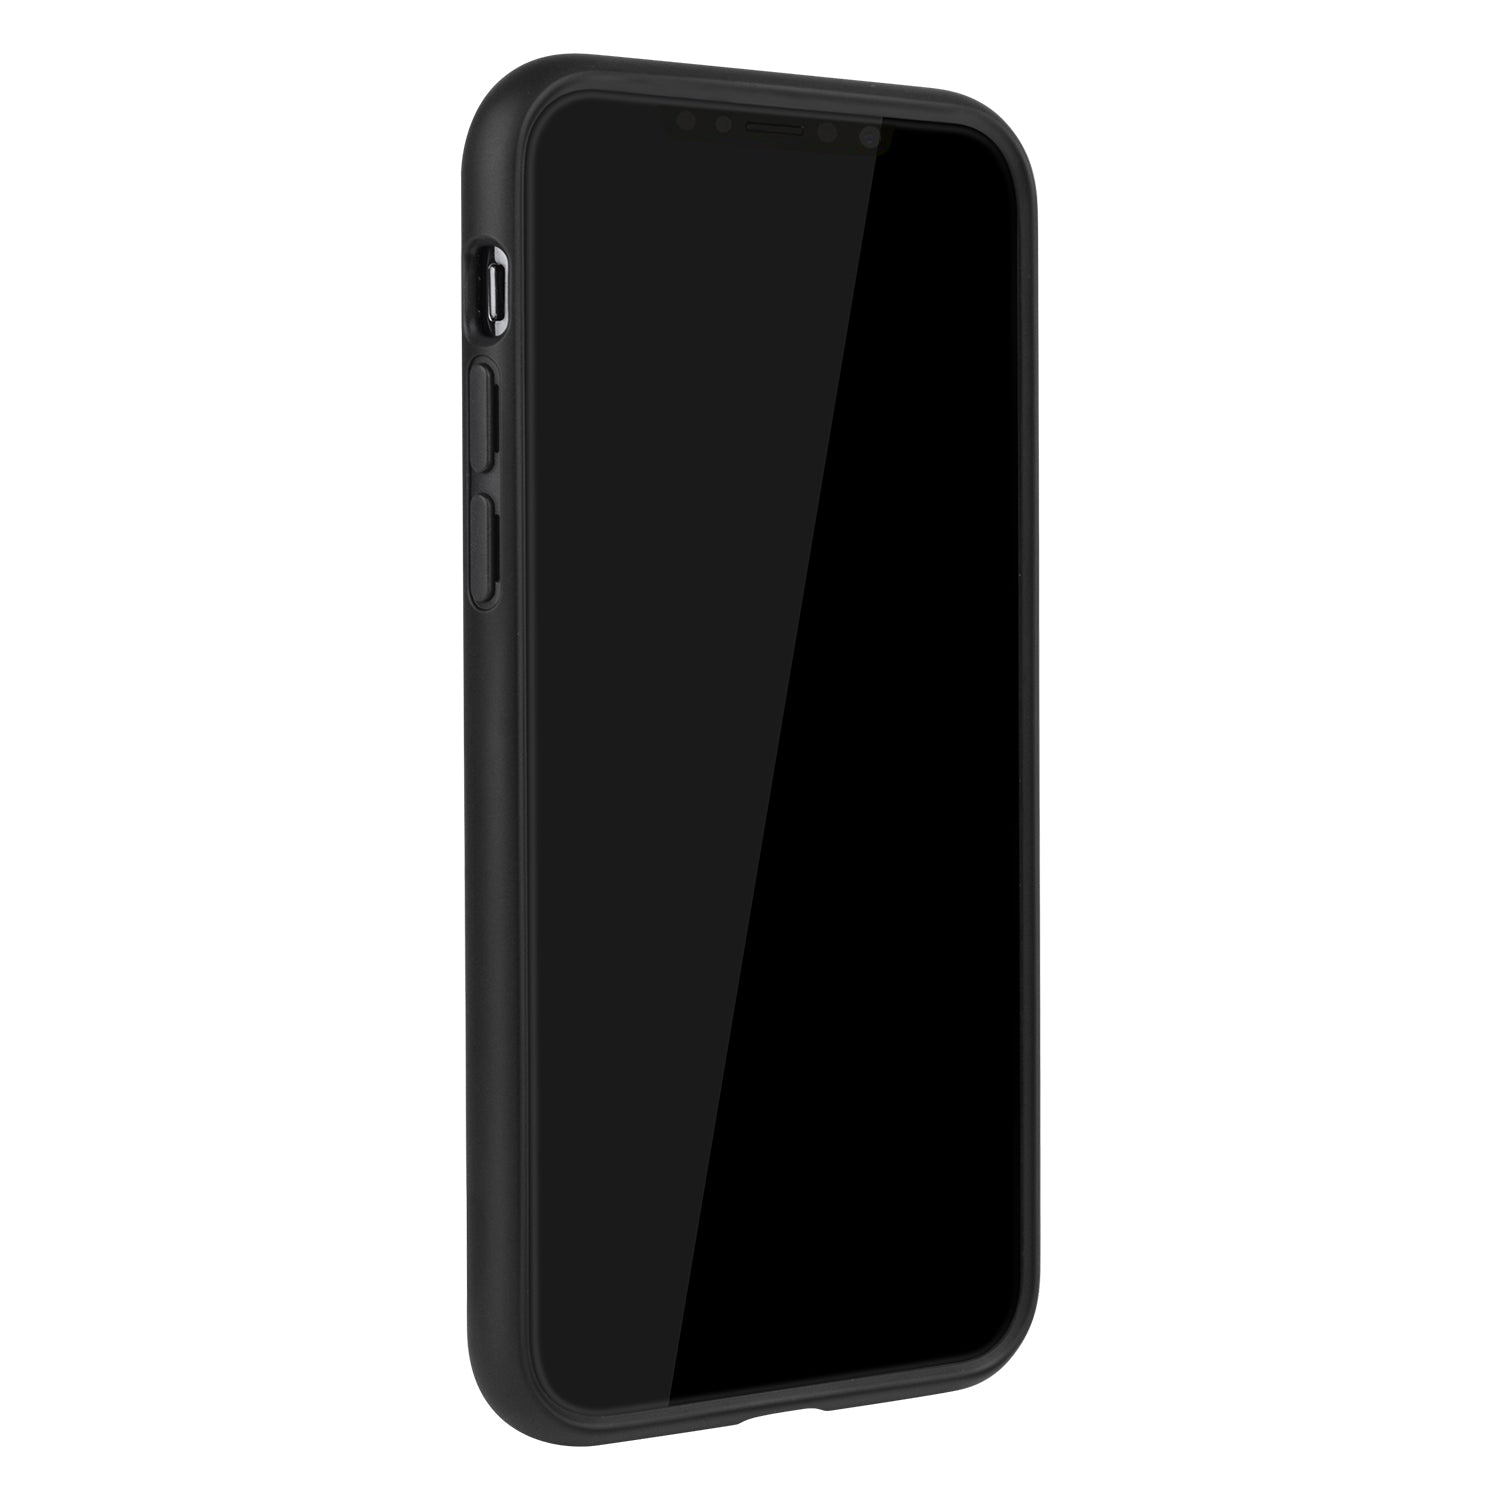 Woodcessories BioCase for iPhone 11 Pro - Black